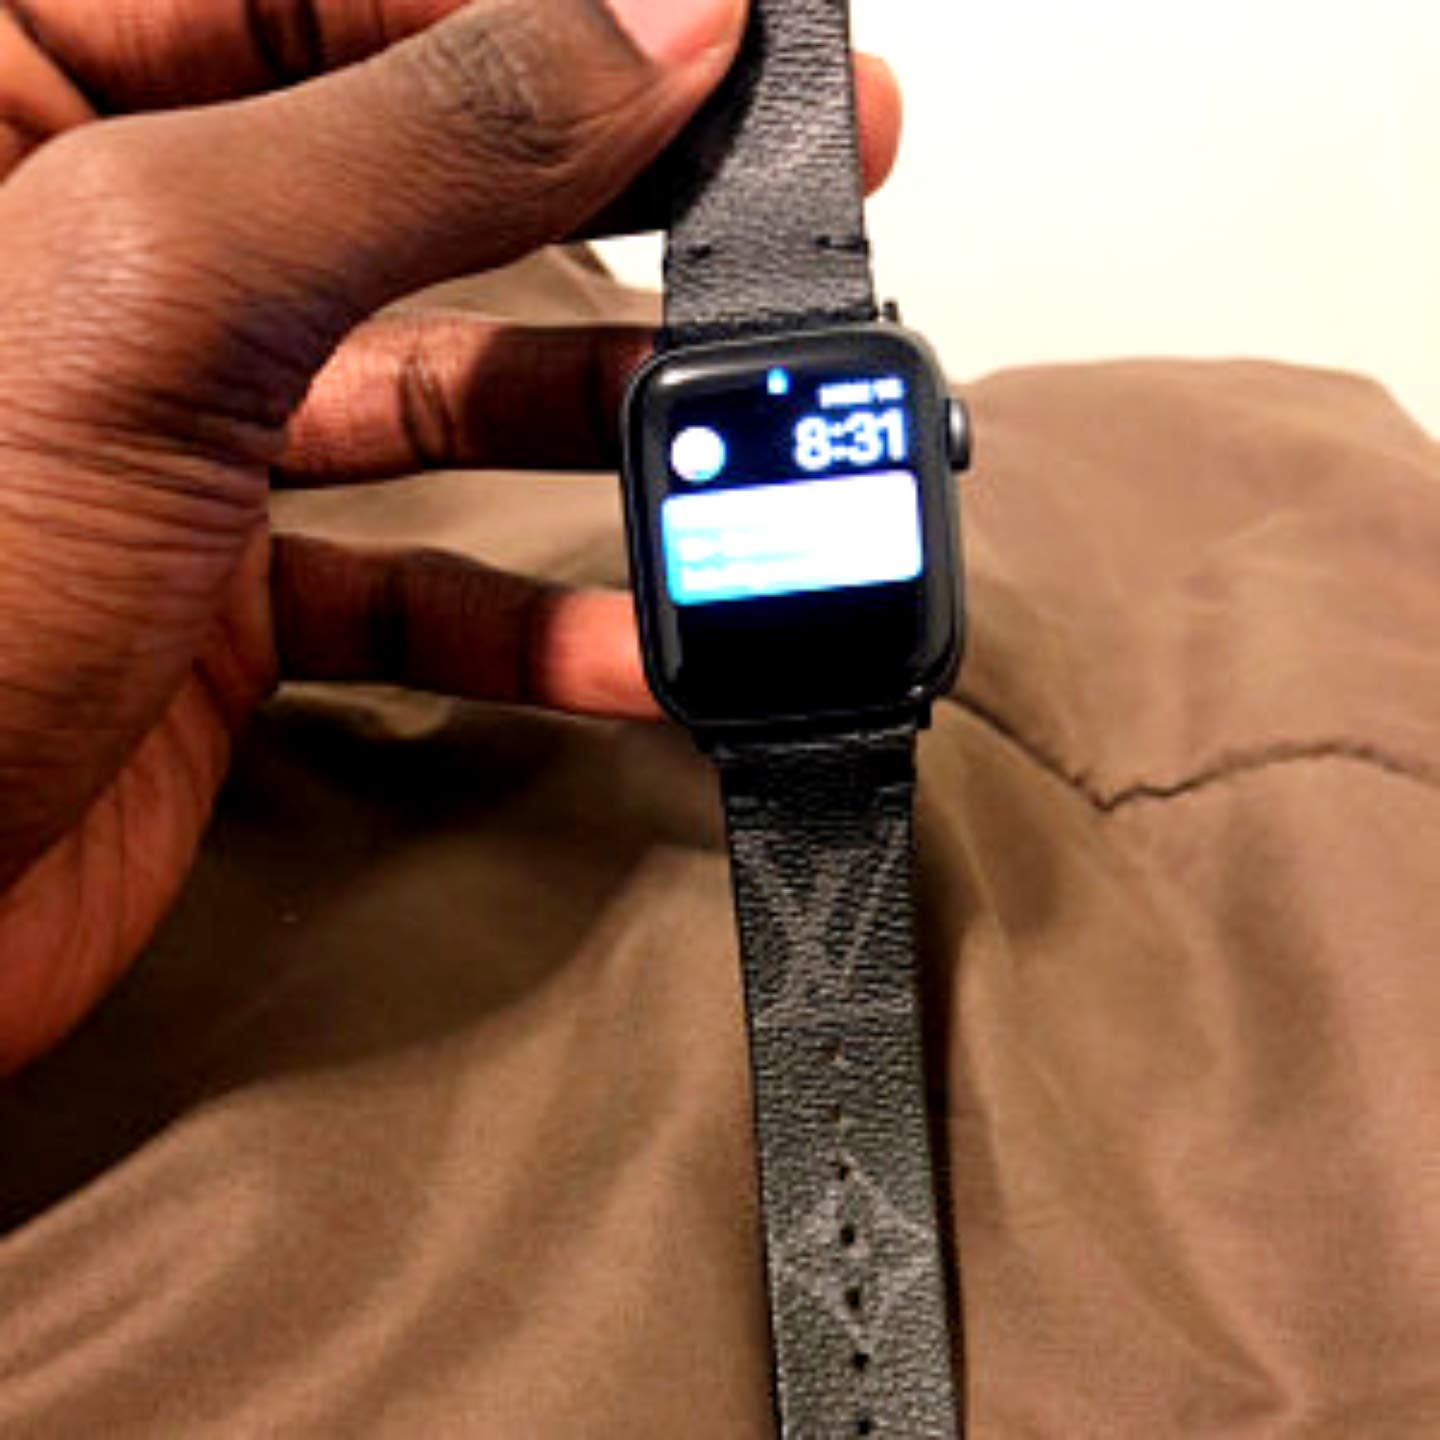 Apple Watch band Black L.V. Monogram for Apple Watch Series 1, 2, 3, 4, 5 by Leatherian  Handcrafted